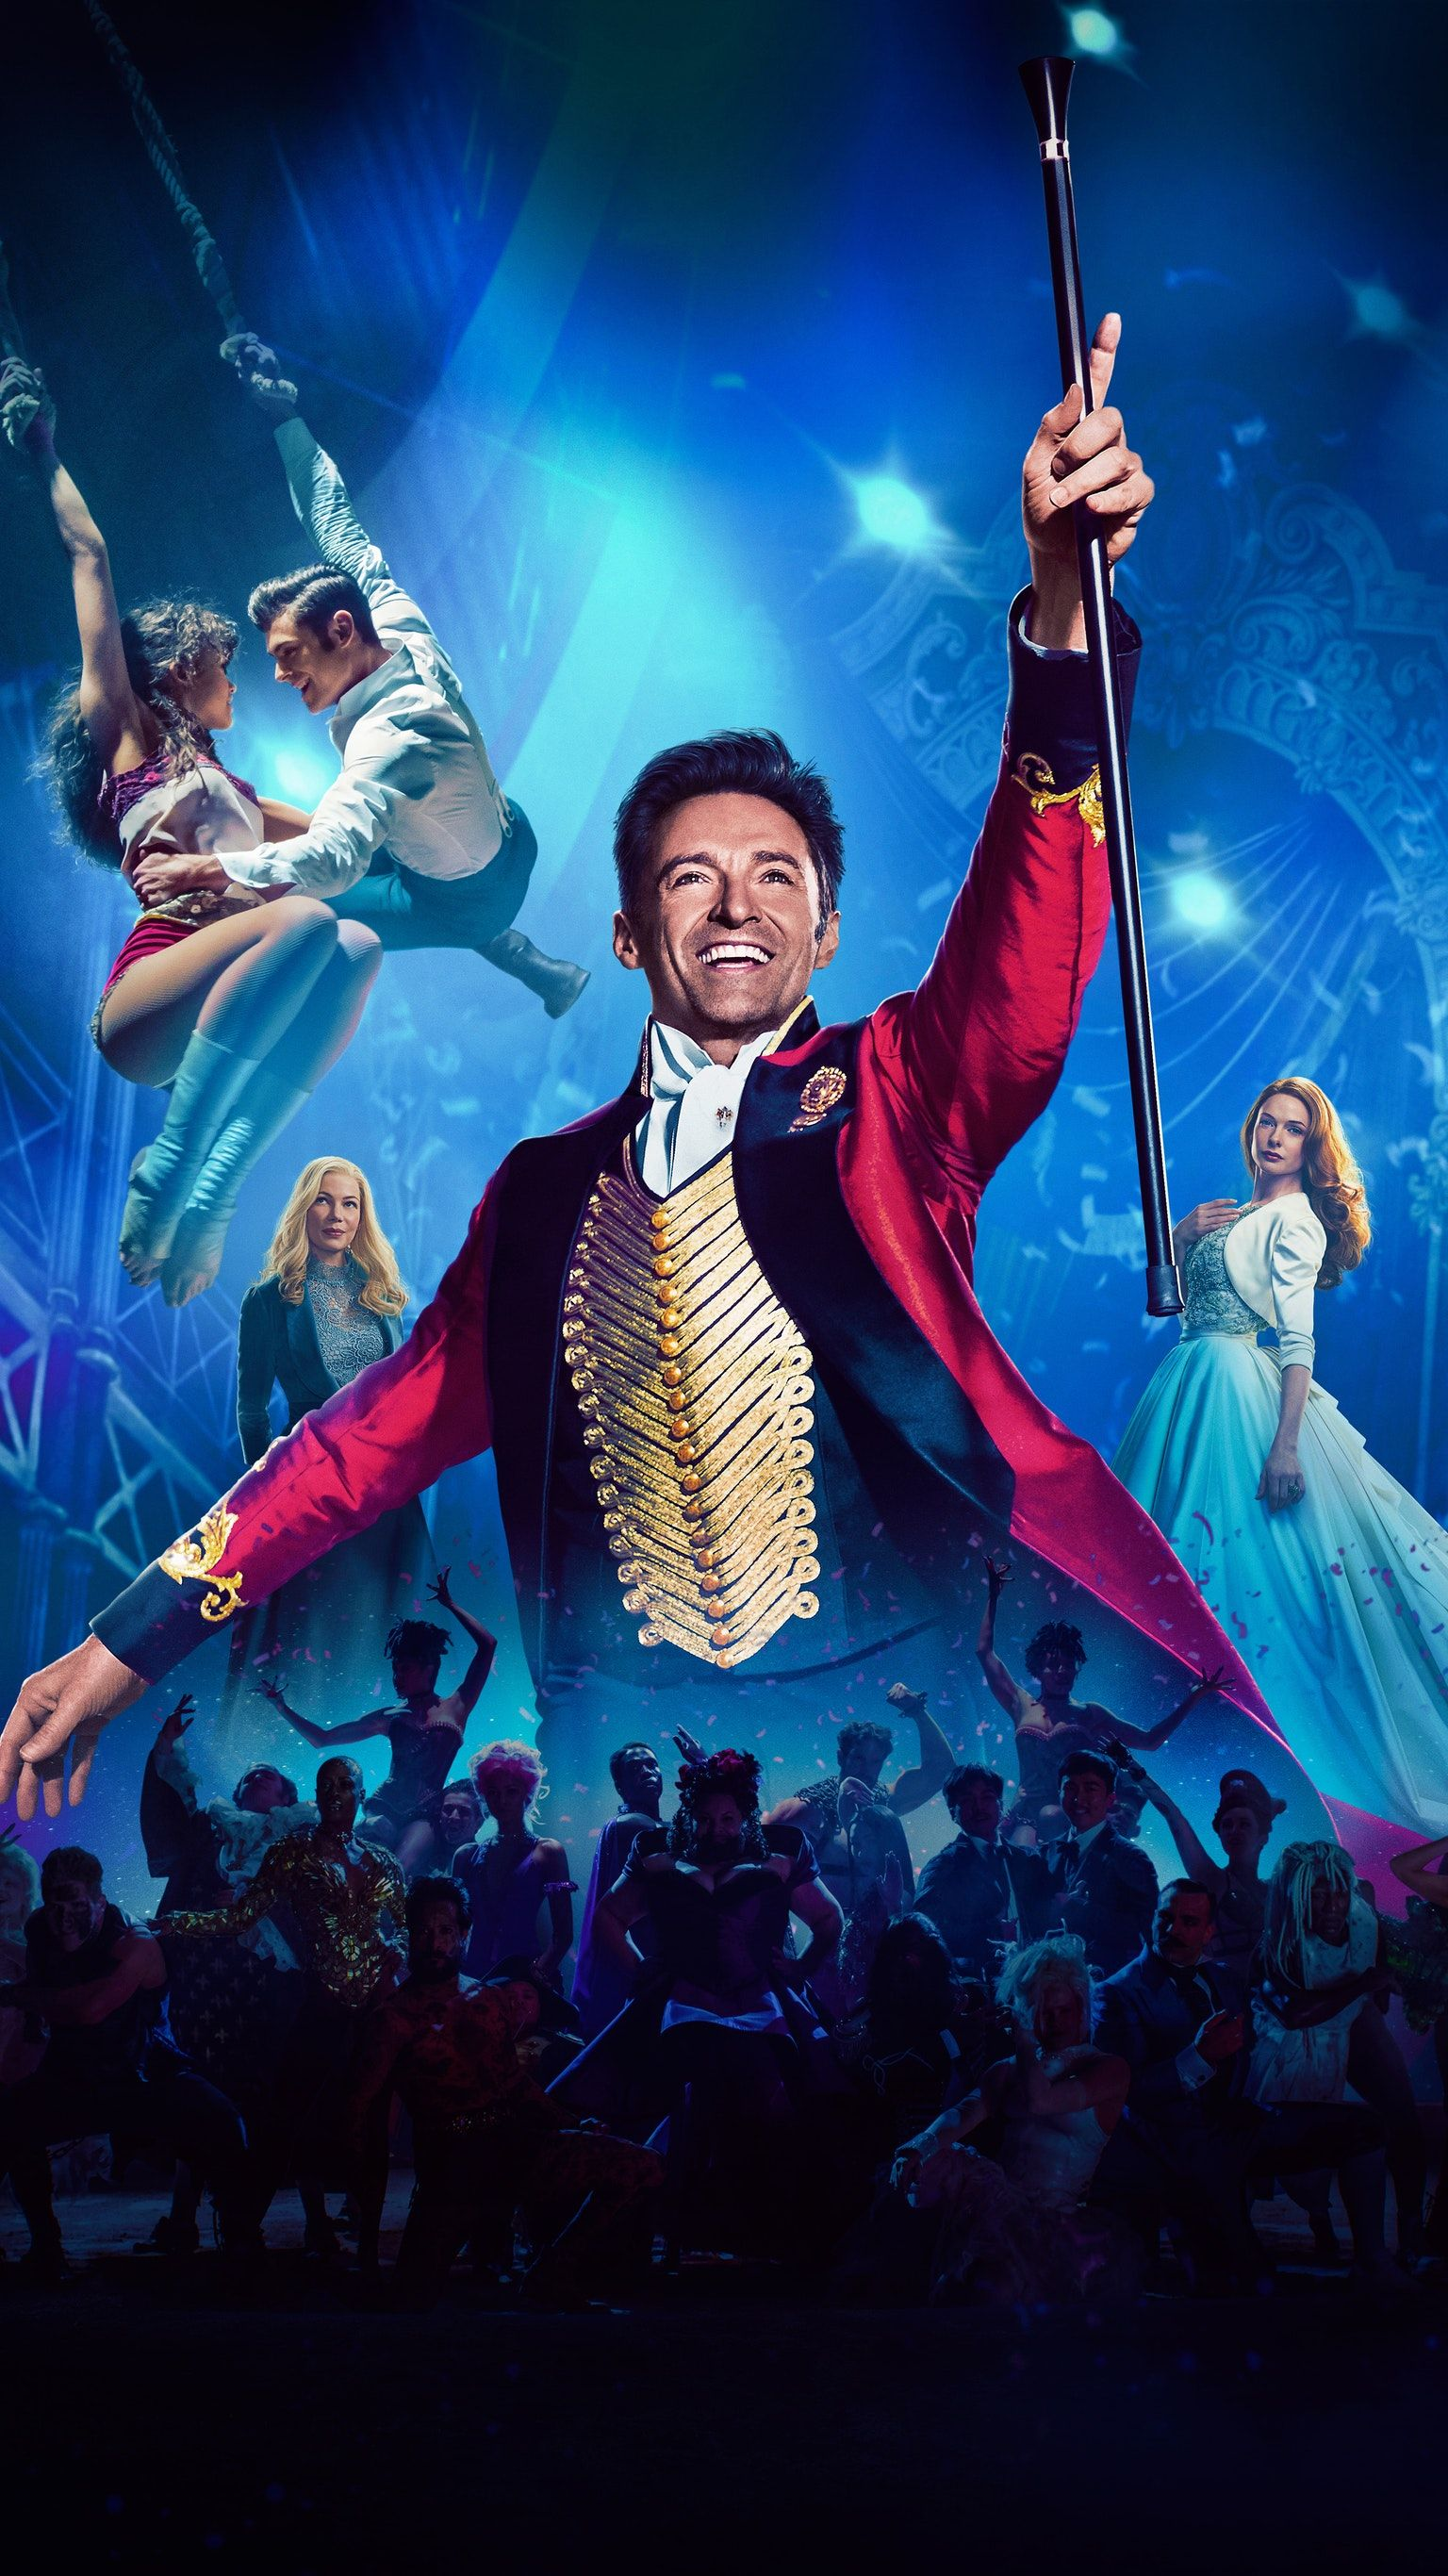 The Greatest Showman 2017 Phone Wallpaper Moviemania Showman Movie The Greatest Showman Good Movies